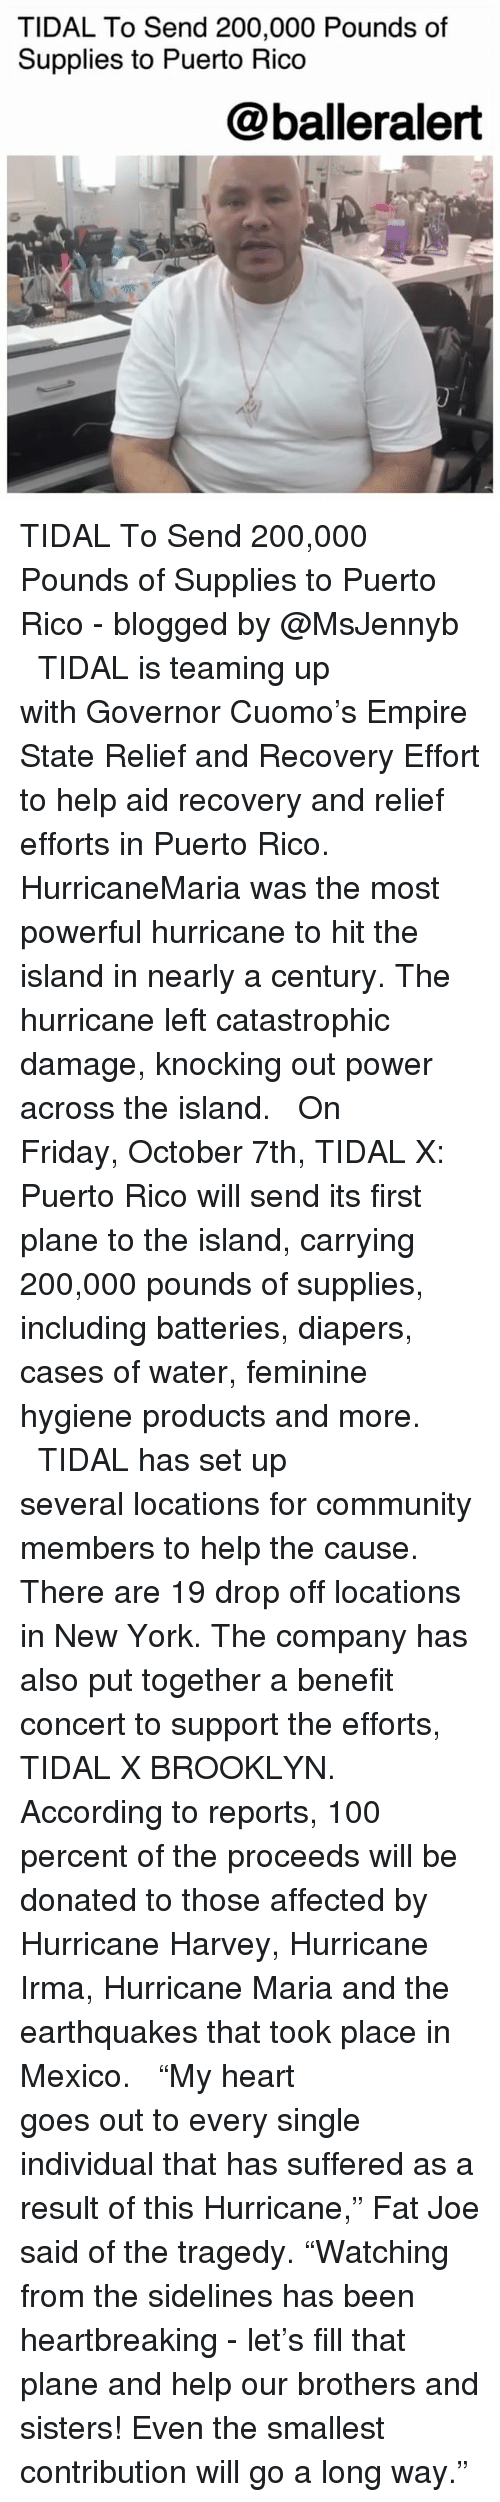 """Hurricane Harvey: TIDAL To Send 200,000 Pounds of  Supplies to Puerto Rico  @balleralert TIDAL To Send 200,000 Pounds of Supplies to Puerto Rico - blogged by @MsJennyb ⠀⠀⠀⠀⠀⠀⠀ ⠀⠀⠀⠀⠀⠀⠀ TIDAL is teaming up with Governor Cuomo's Empire State Relief and Recovery Effort to help aid recovery and relief efforts in Puerto Rico. ⠀⠀⠀⠀⠀⠀⠀ ⠀⠀⠀⠀⠀⠀⠀ HurricaneMaria was the most powerful hurricane to hit the island in nearly a century. The hurricane left catastrophic damage, knocking out power across the island. ⠀⠀⠀⠀⠀⠀⠀ ⠀⠀⠀⠀⠀⠀⠀ On Friday, October 7th, TIDAL X: Puerto Rico will send its first plane to the island, carrying 200,000 pounds of supplies, including batteries, diapers, cases of water, feminine hygiene products and more. ⠀⠀⠀⠀⠀⠀⠀ ⠀⠀⠀⠀⠀⠀⠀ TIDAL has set up several locations for community members to help the cause. There are 19 drop off locations in New York. The company has also put together a benefit concert to support the efforts, TIDAL X BROOKLYN. According to reports, 100 percent of the proceeds will be donated to those affected by Hurricane Harvey, Hurricane Irma, Hurricane Maria and the earthquakes that took place in Mexico. ⠀⠀⠀⠀⠀⠀⠀ ⠀⠀⠀⠀⠀⠀⠀ """"My heart goes out to every single individual that has suffered as a result of this Hurricane,"""" Fat Joe said of the tragedy. """"Watching from the sidelines has been heartbreaking - let's fill that plane and help our brothers and sisters! Even the smallest contribution will go a long way."""""""